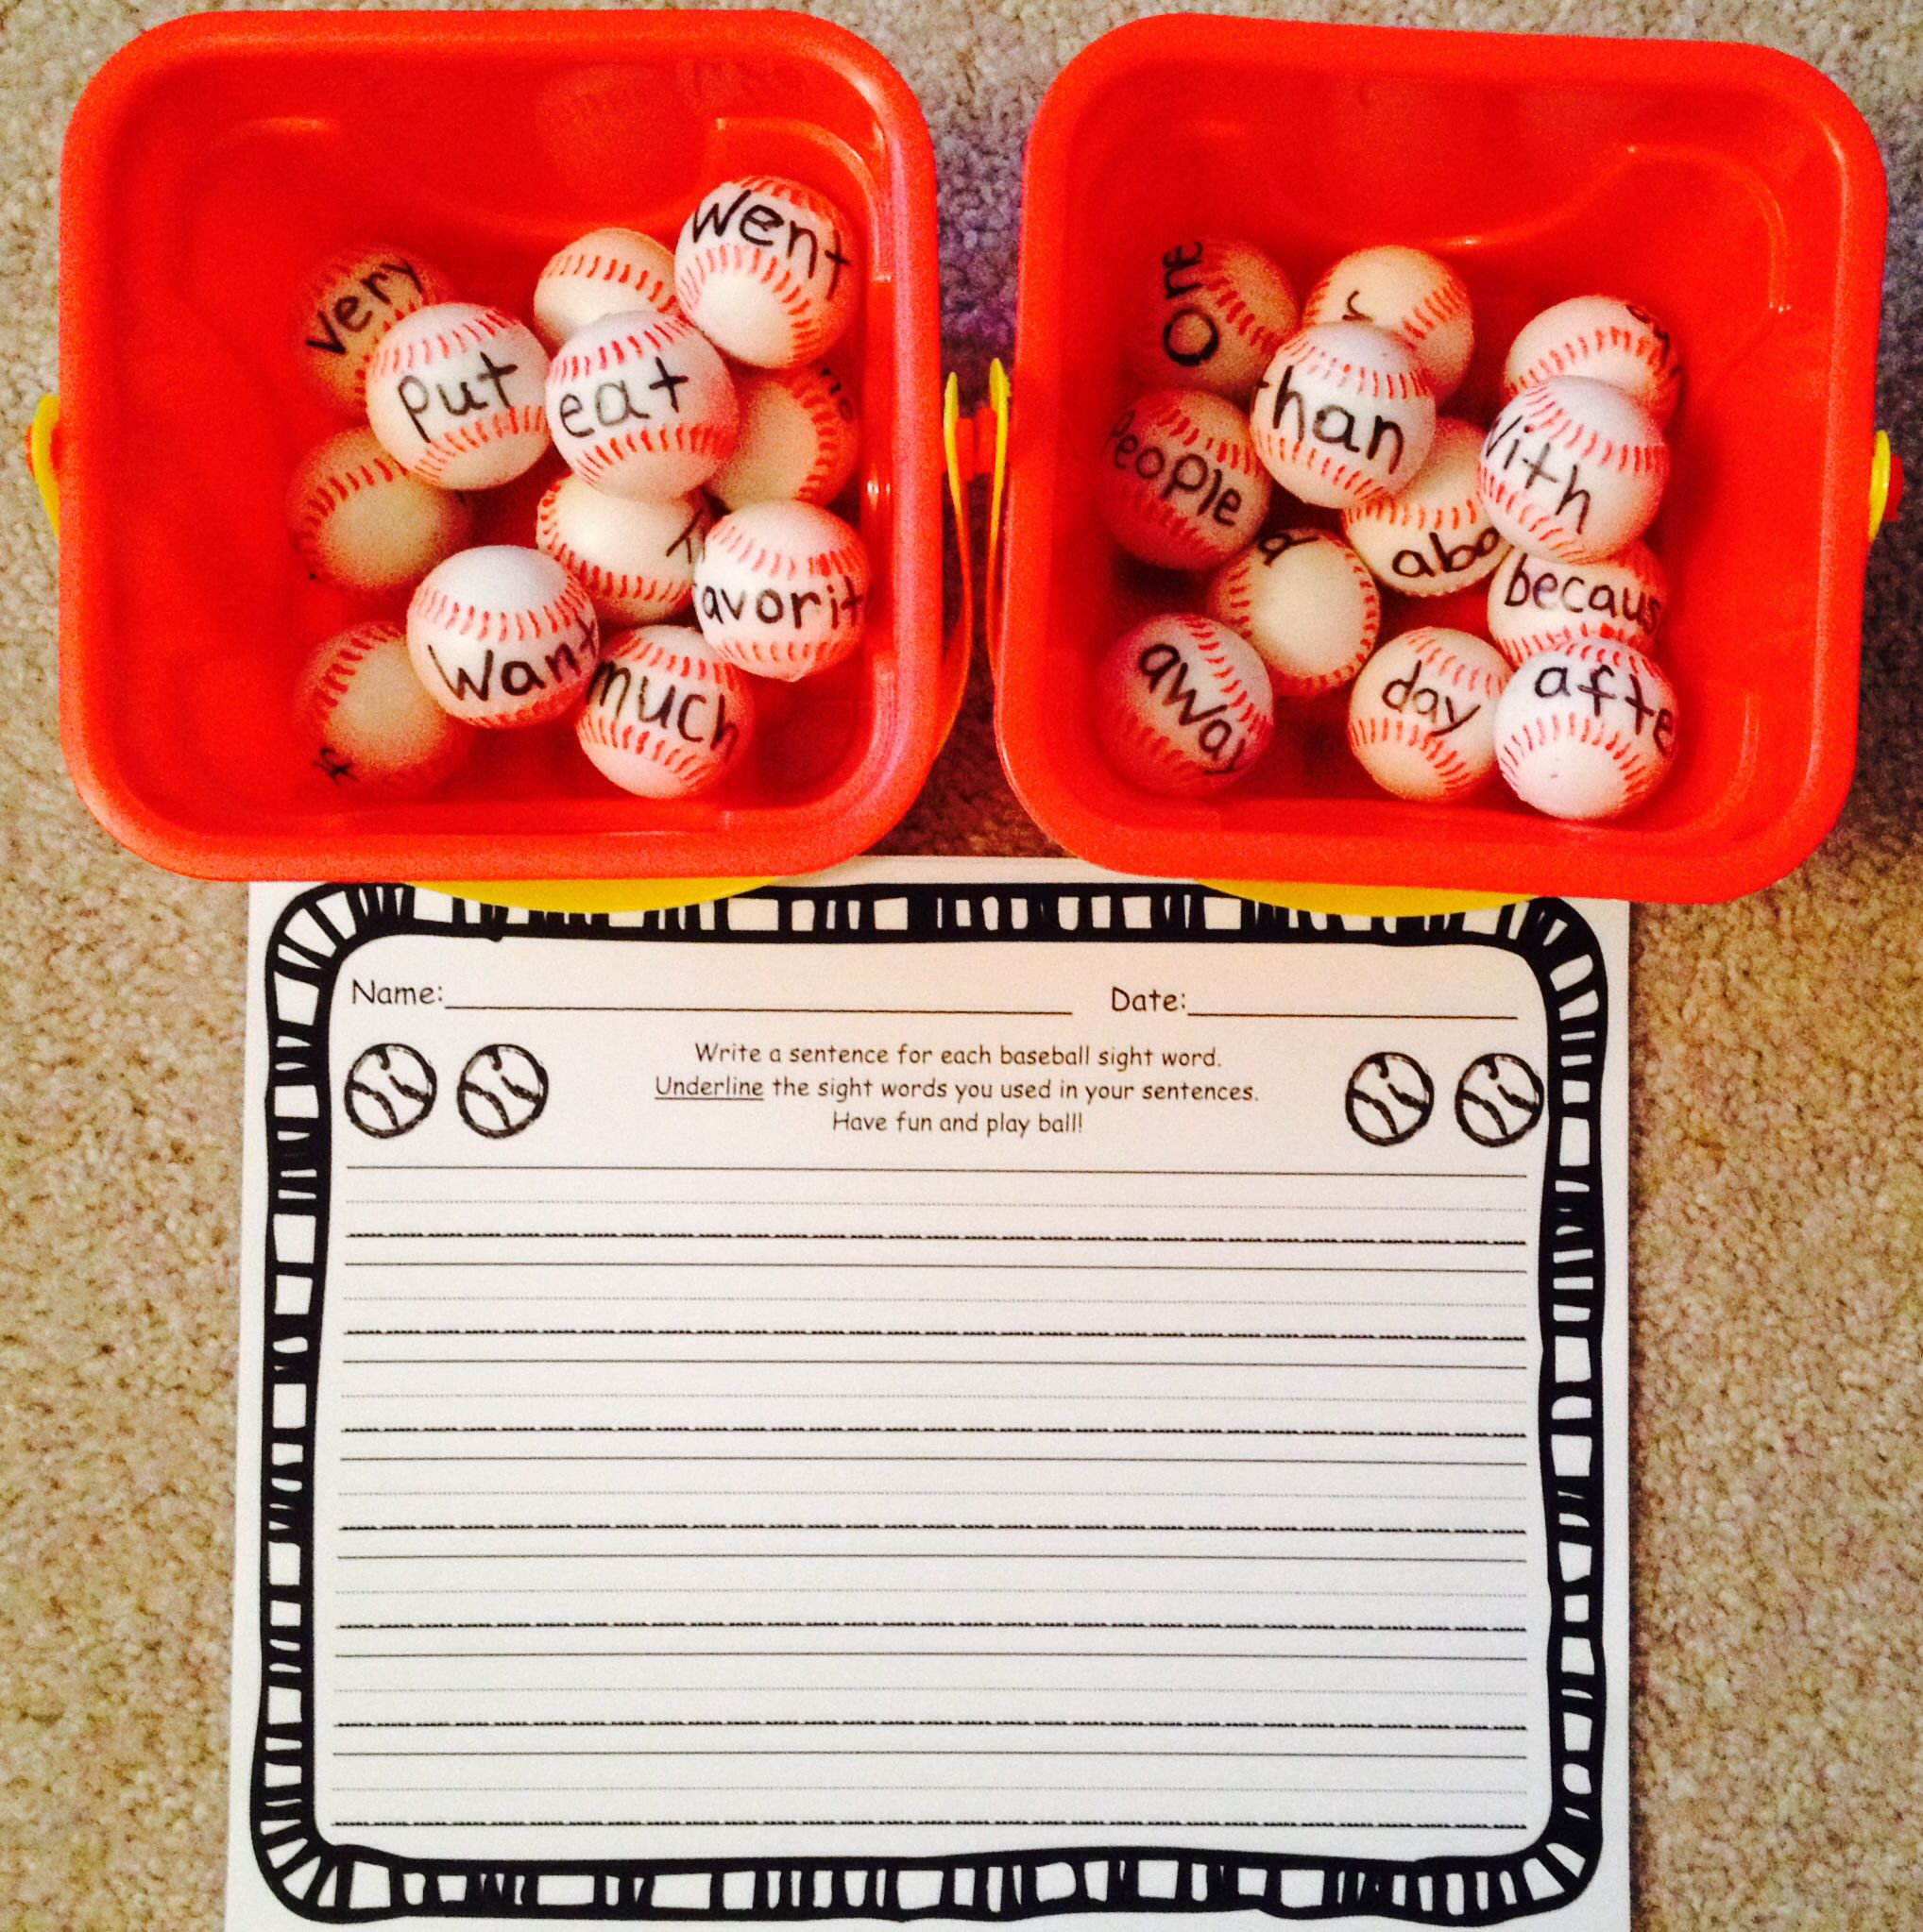 Kindergarten Sight Words On Baseballs With Writing